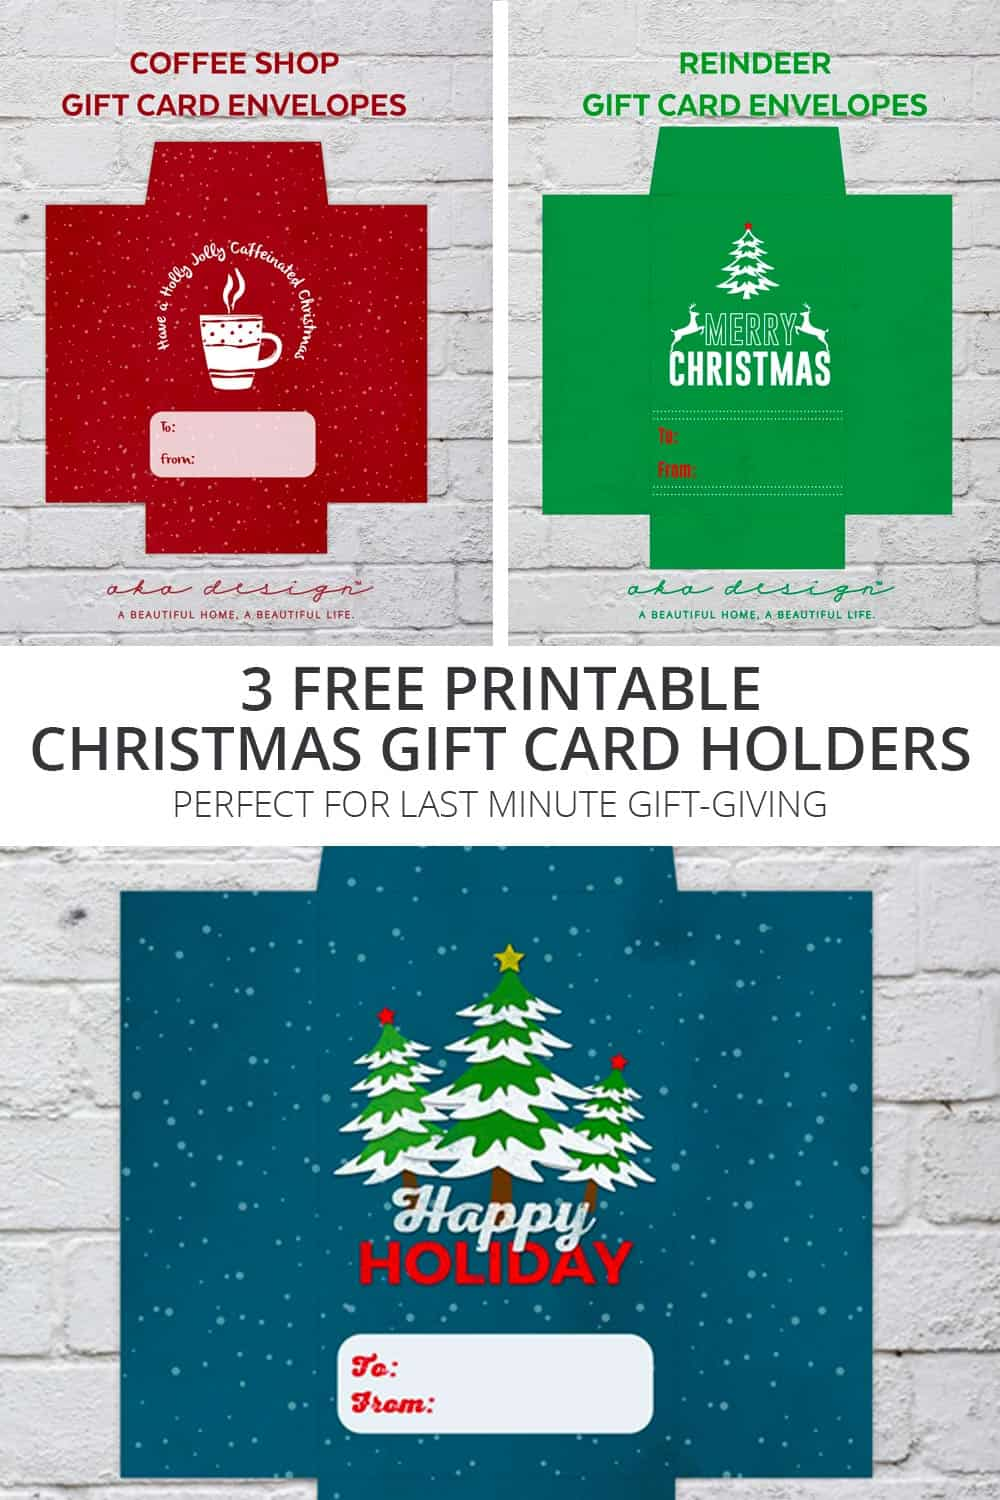 photo regarding Printable Gift Card Holder referred to as 3 Absolutely free Printable Xmas Reward Card Holders - For Final